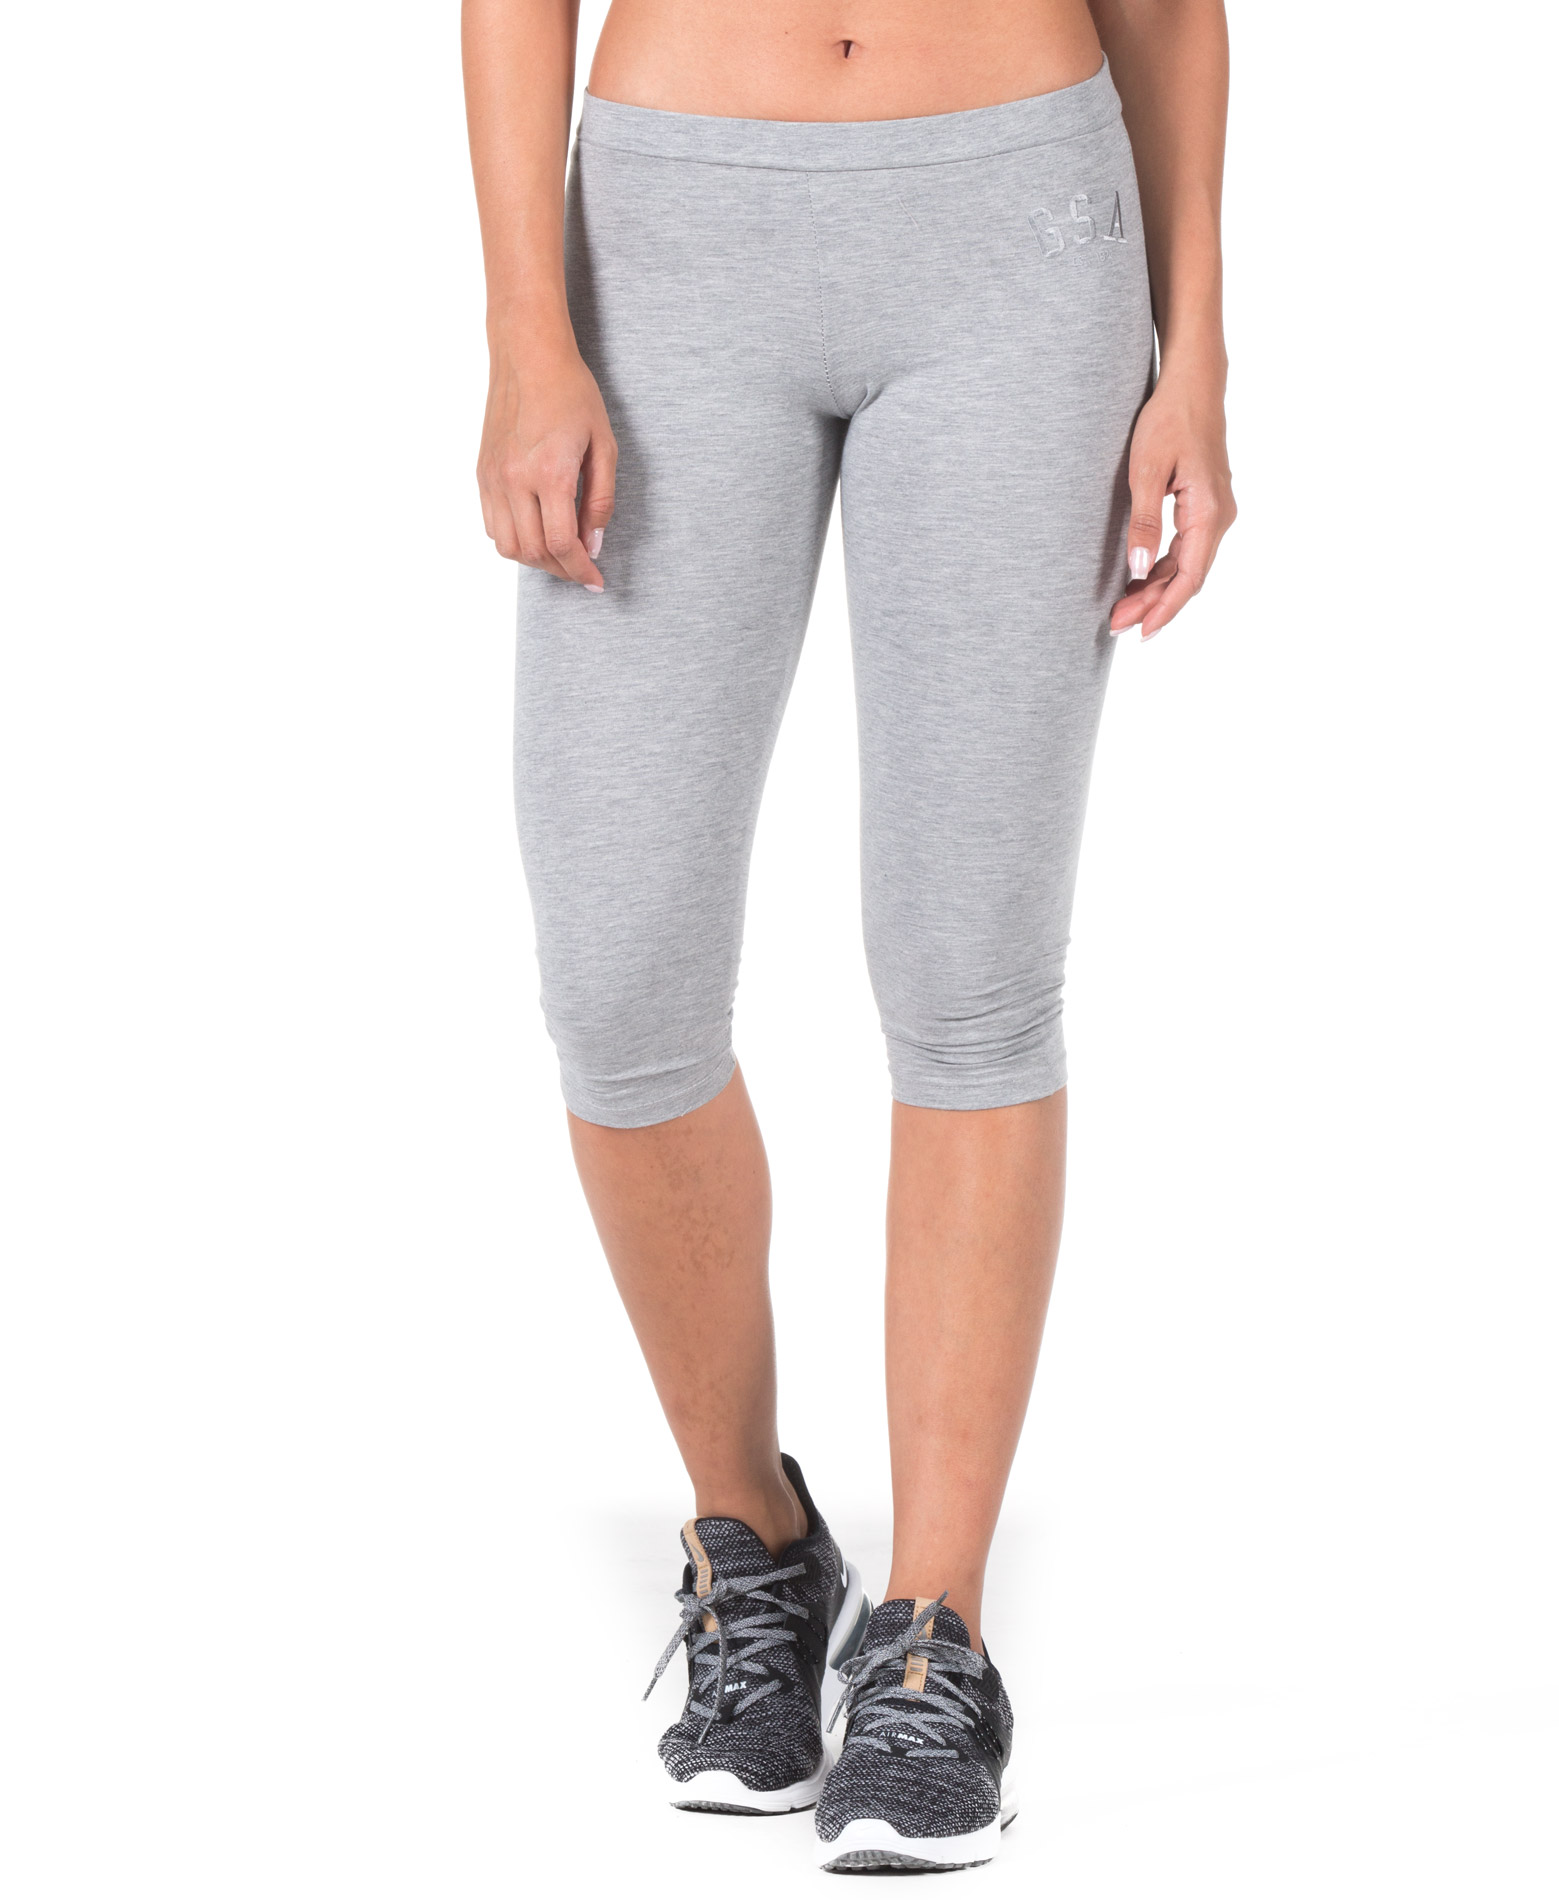 GSA WMN CAPRI LEGGINGS 88-2415-GREY MEL Γκρί